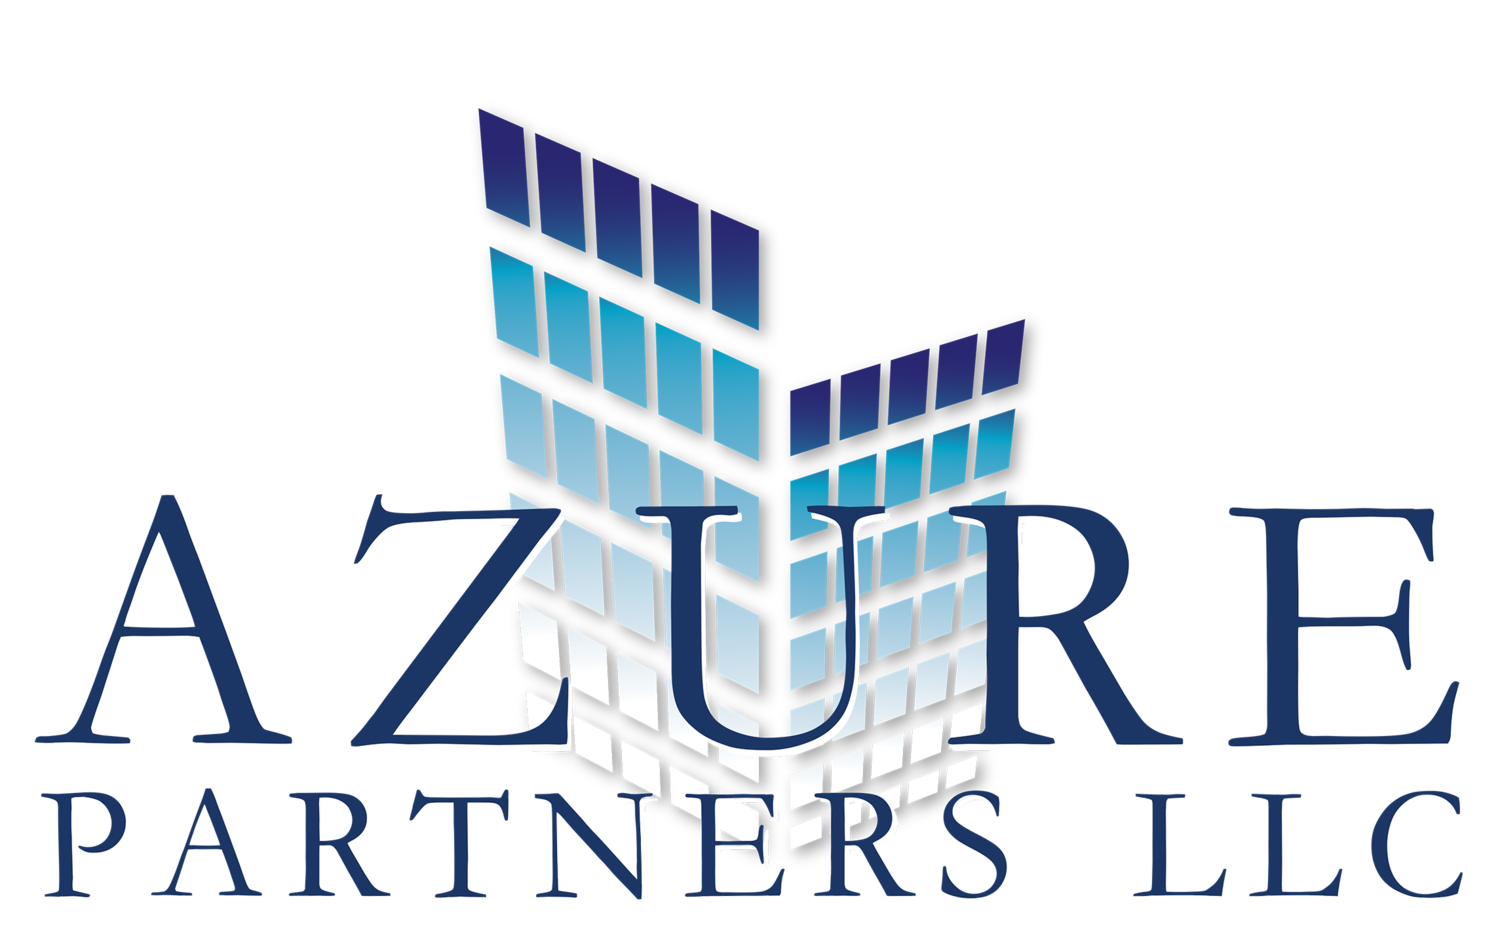 Azure Partners, LLC